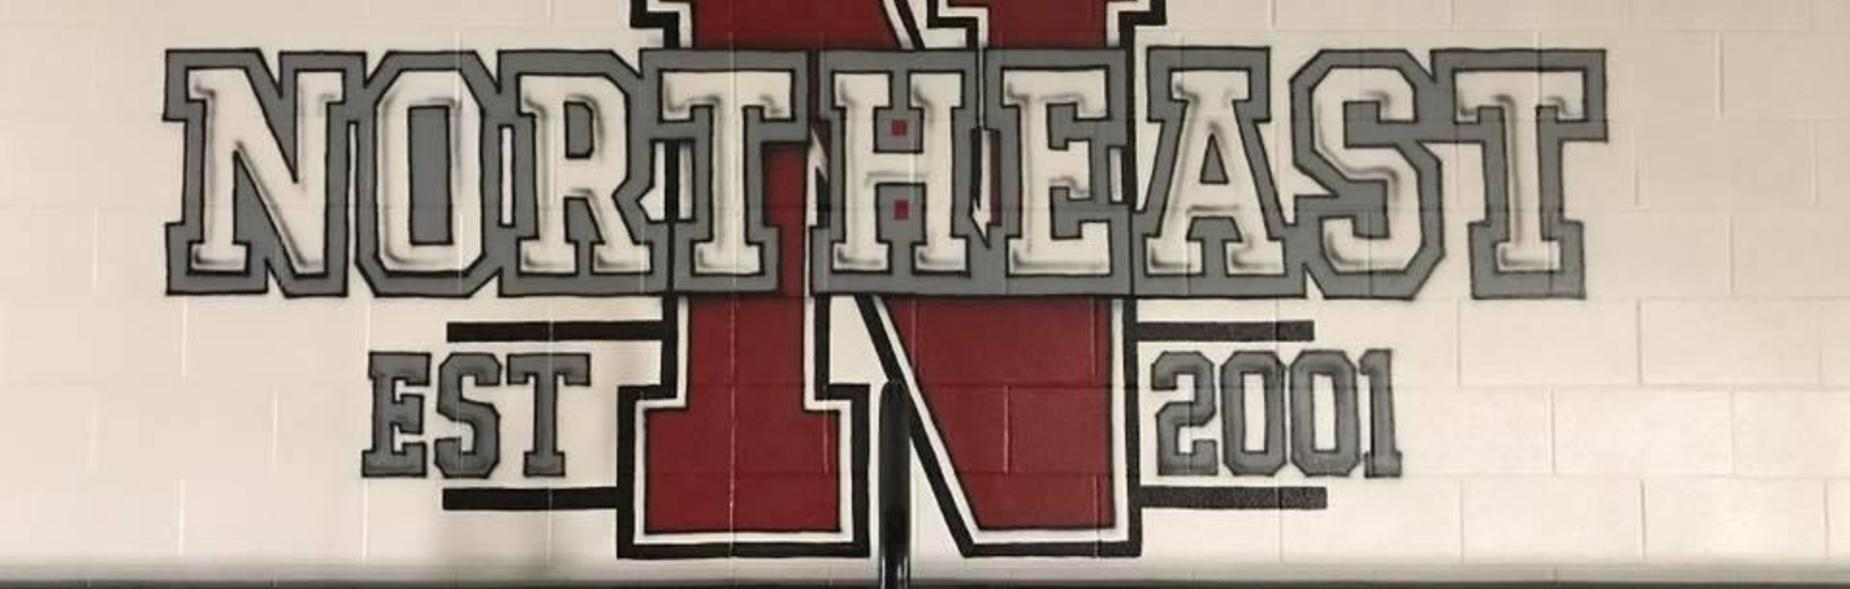 Gym painting of school name